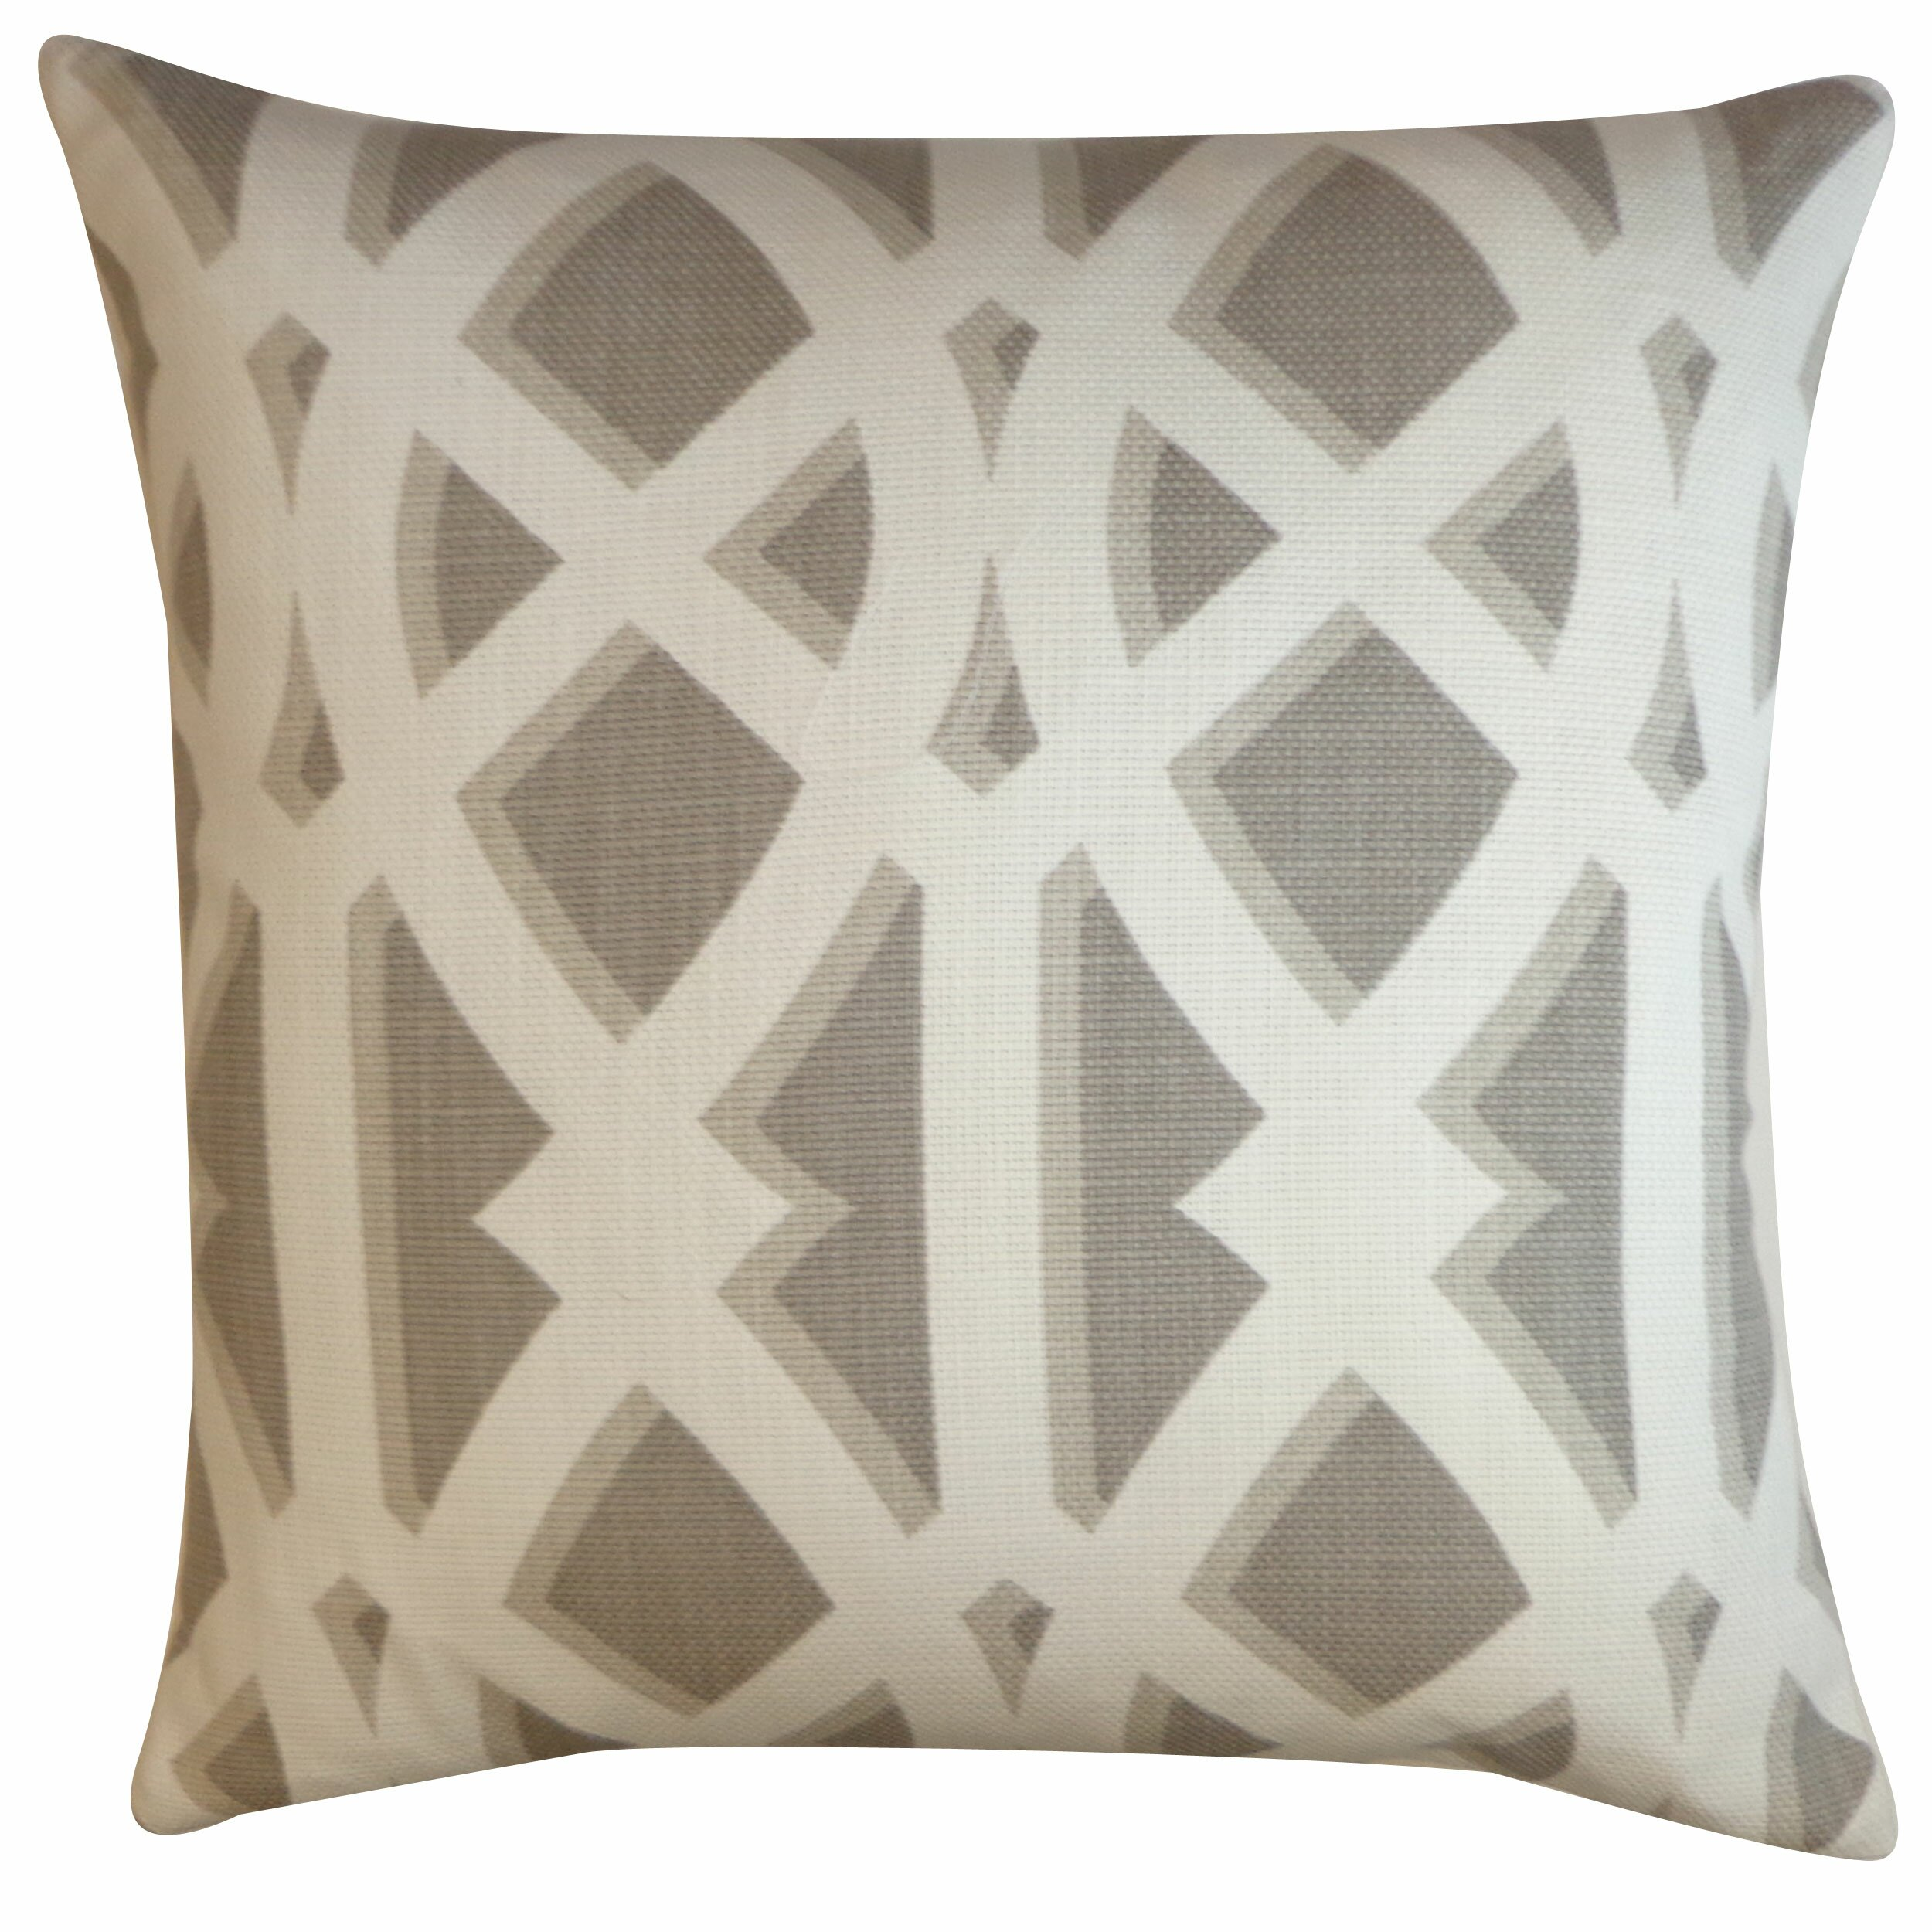 Jiti Decorative Pillows : Jiti Crossroads Cotton Throw Pillow & Reviews Wayfair